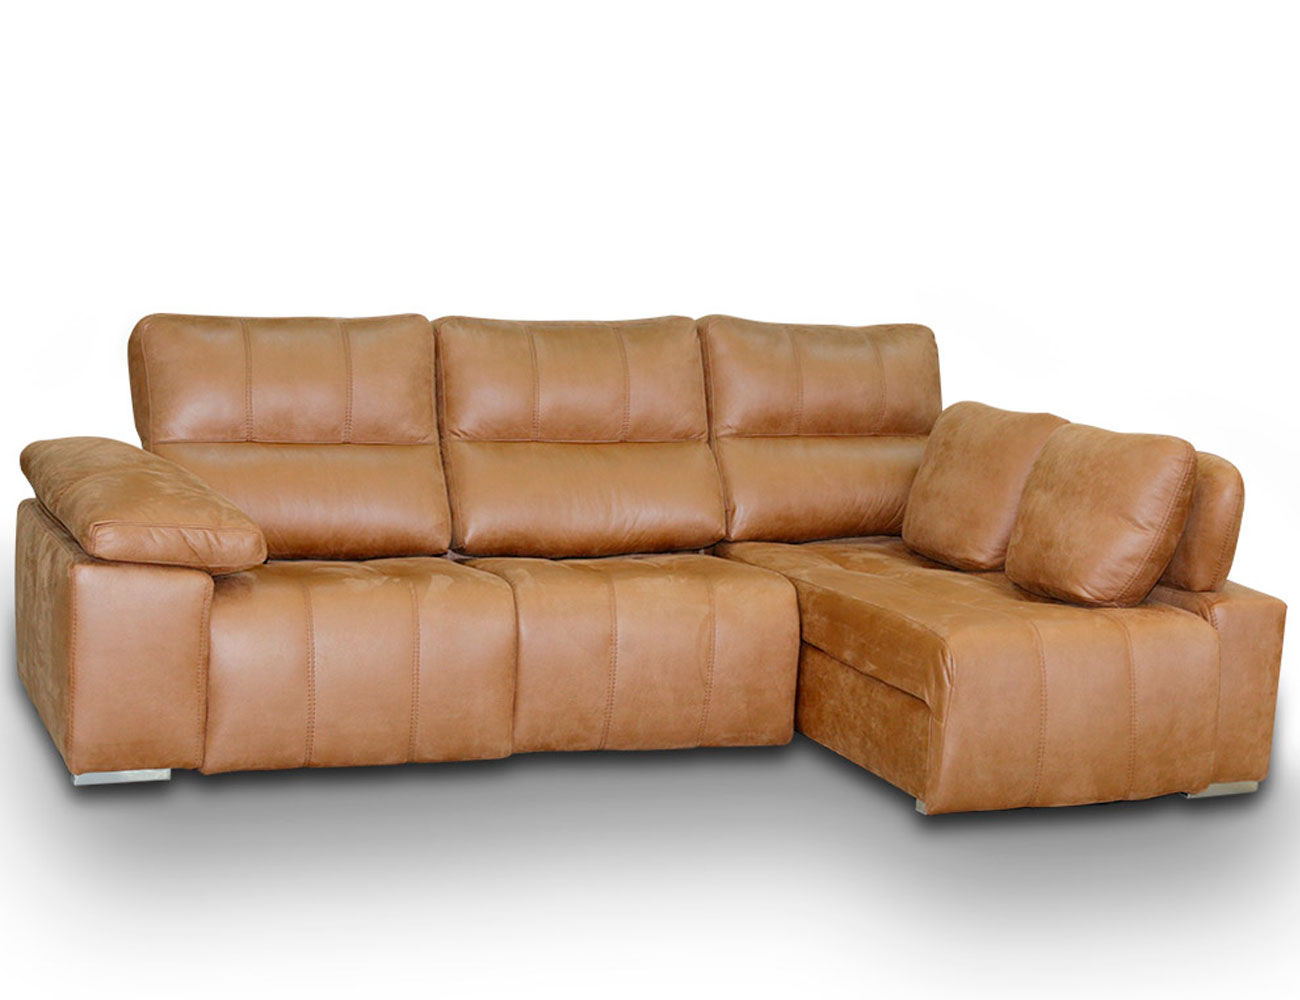 Sofa chaiselongue relax 2 motores anti manchas32